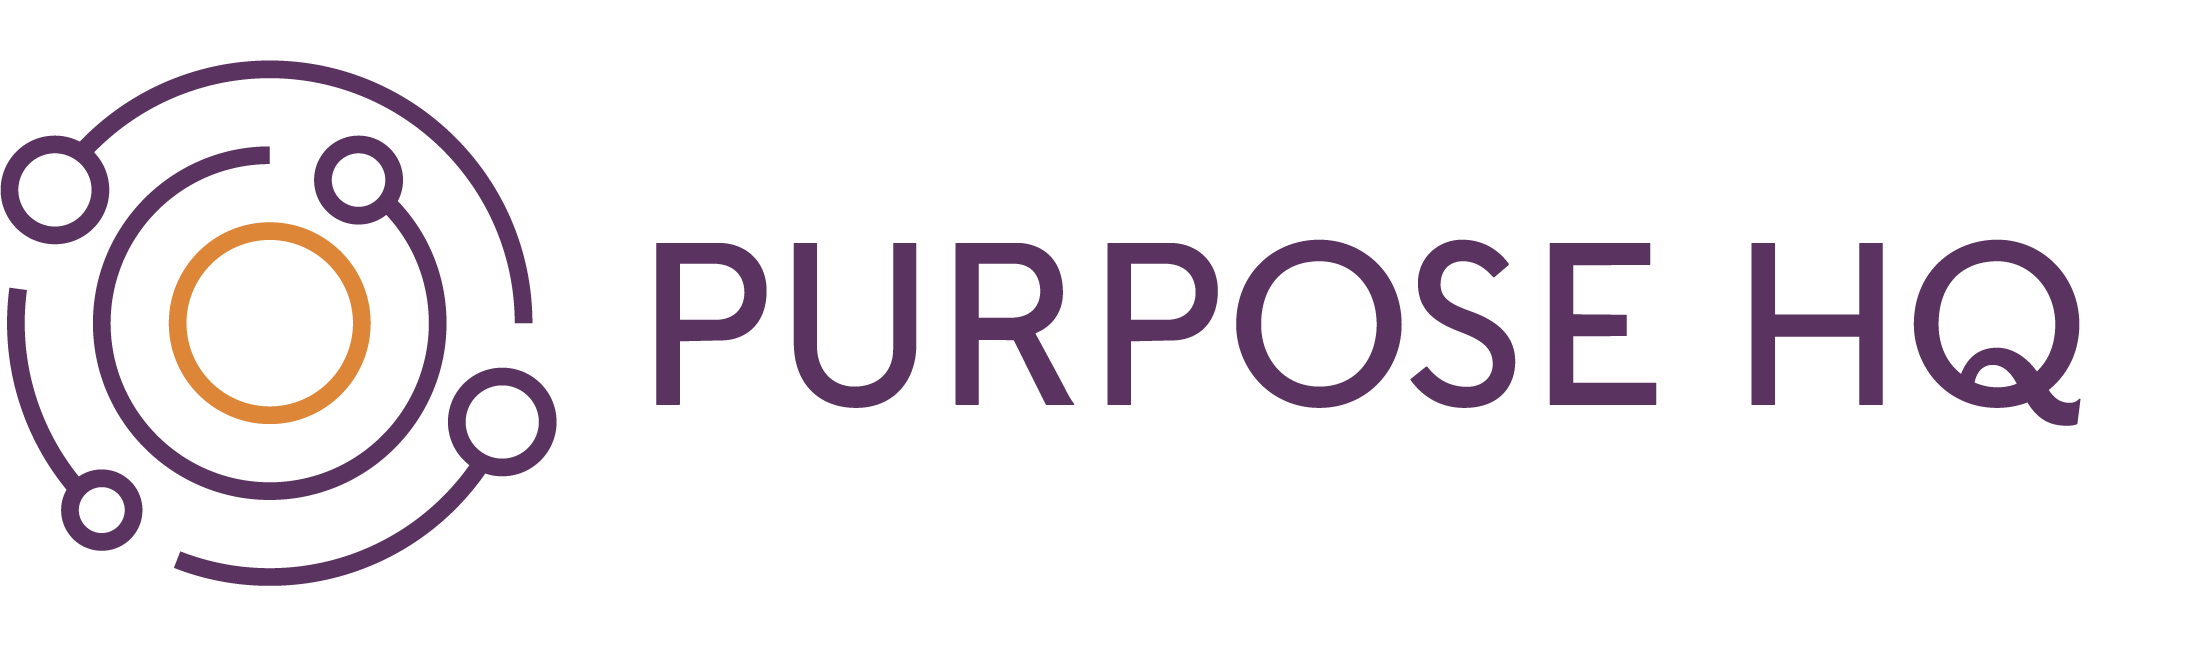 Purposely logo